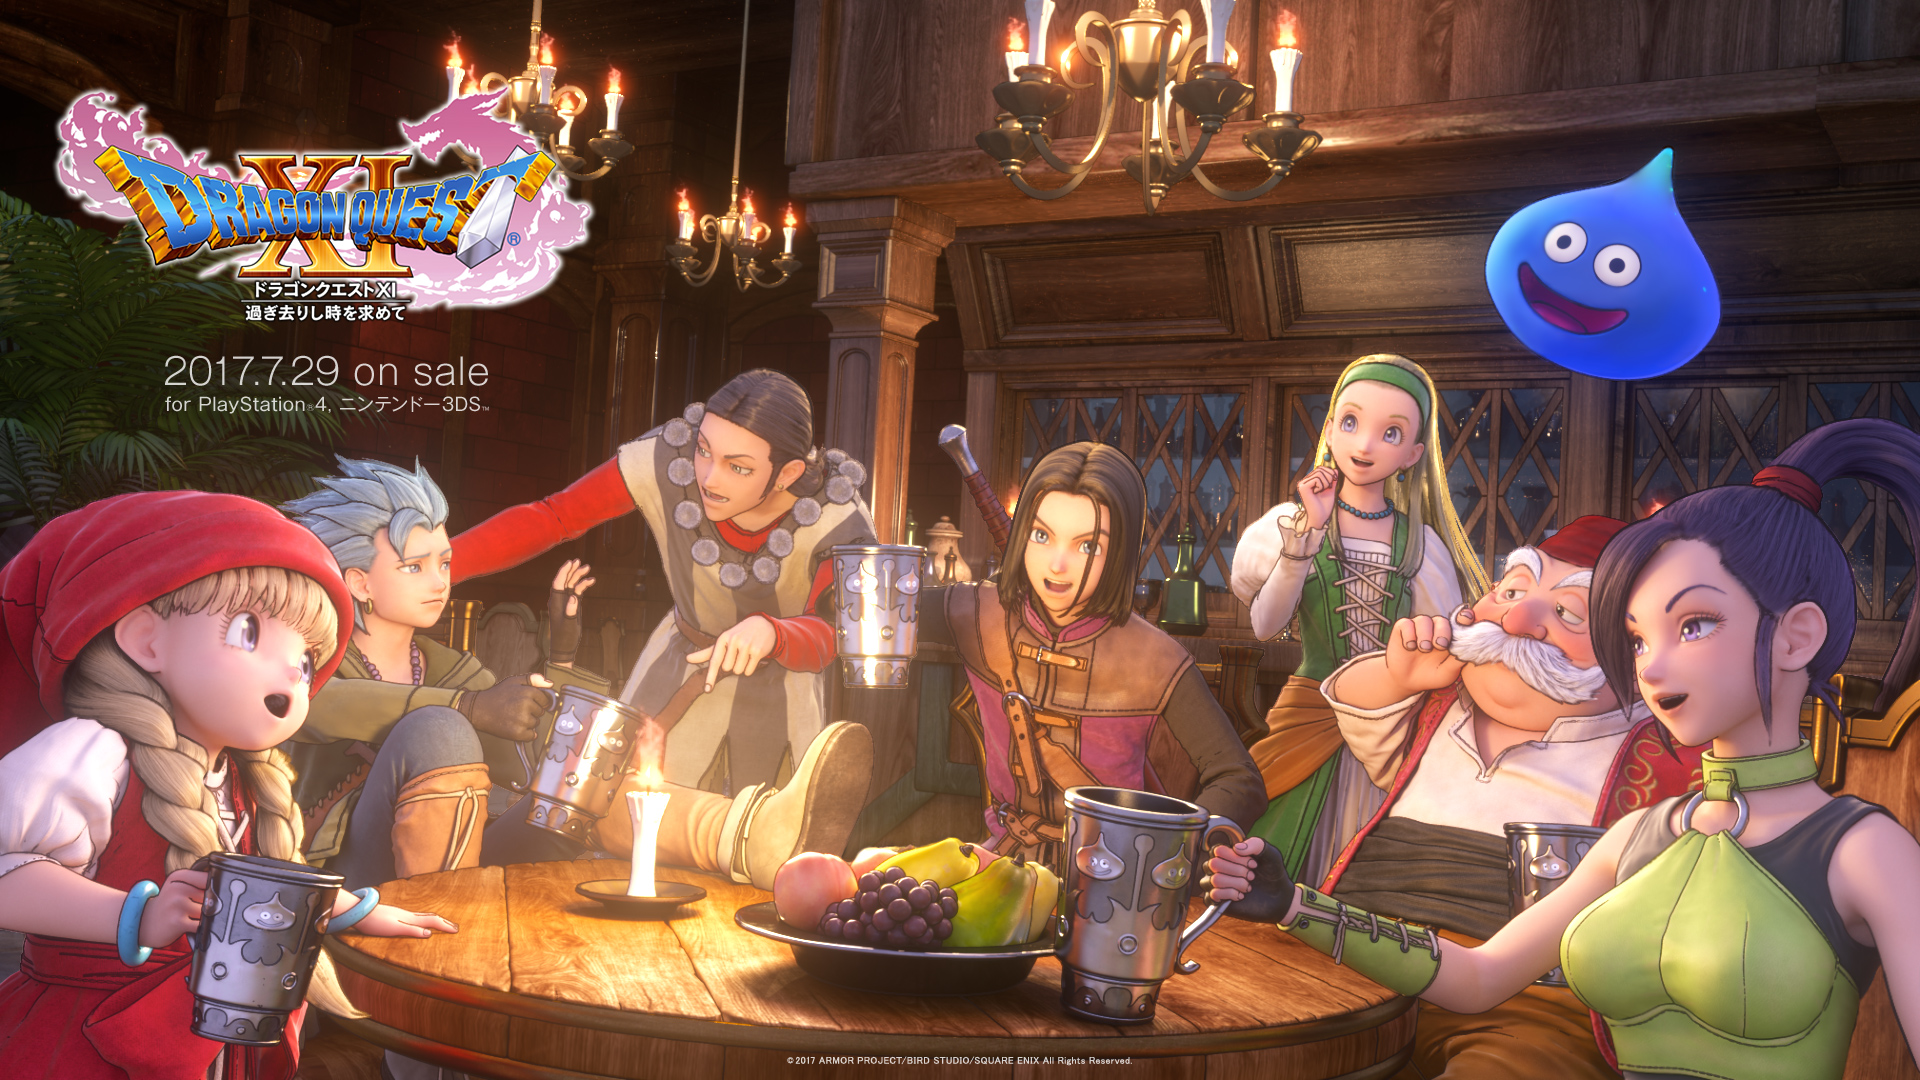 Introducing the charm of the latest Dragon Quest 11 of the